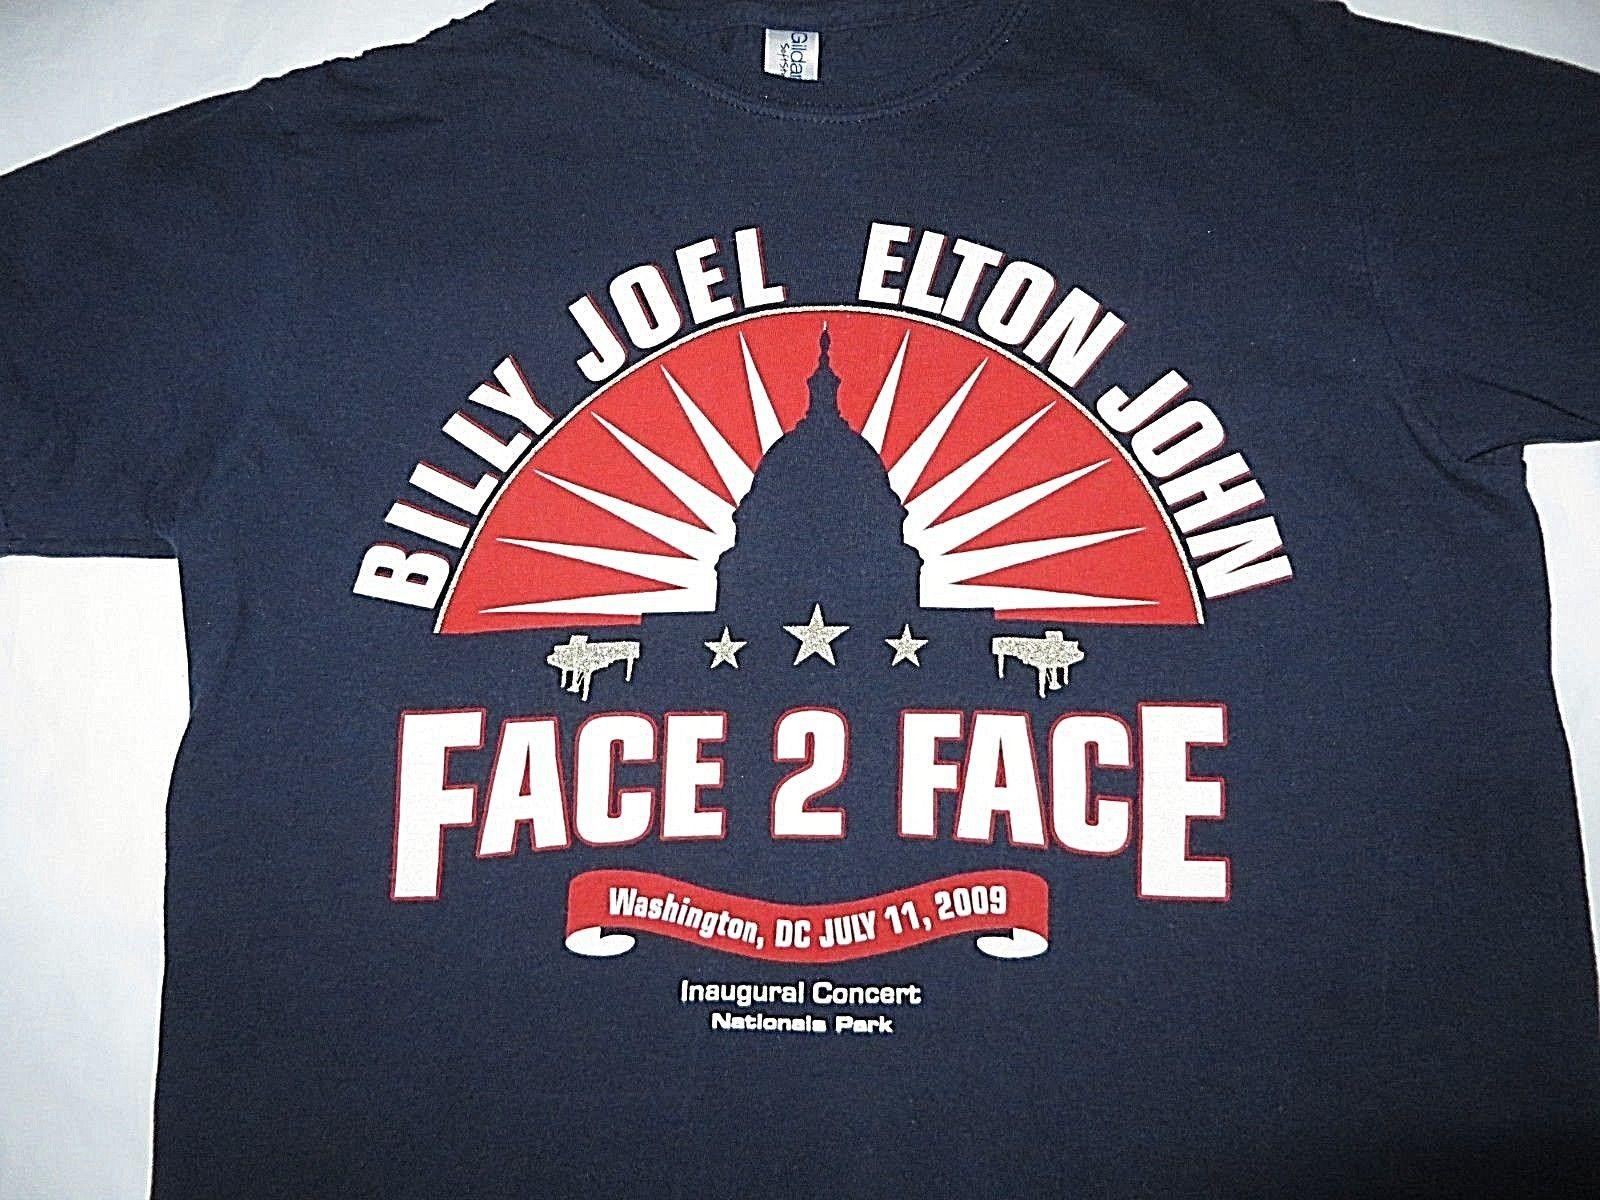 T-Shirt Billy Joel Elton John Face 2 Face Inaugural Concert Piccola stampa fronte / retro